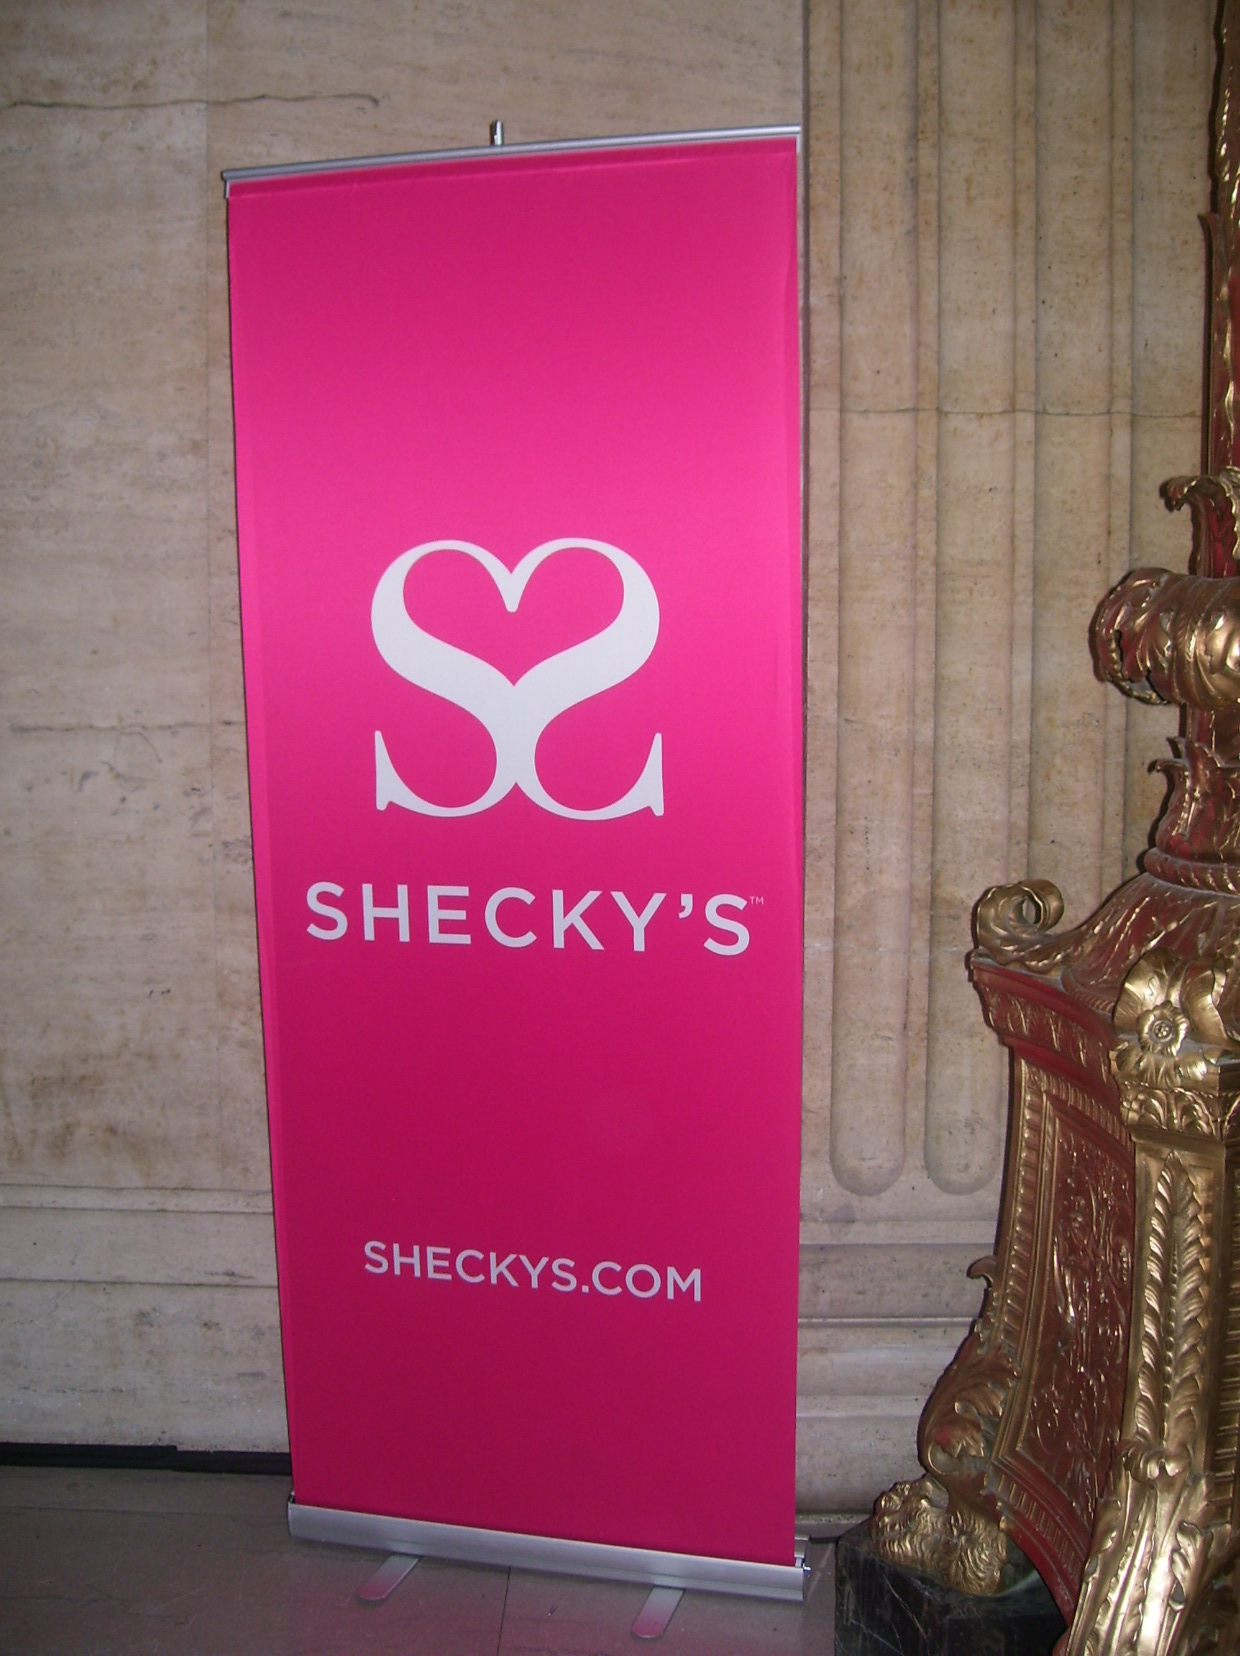 Shecky's Girls Night Out Chicago for Fall 2011